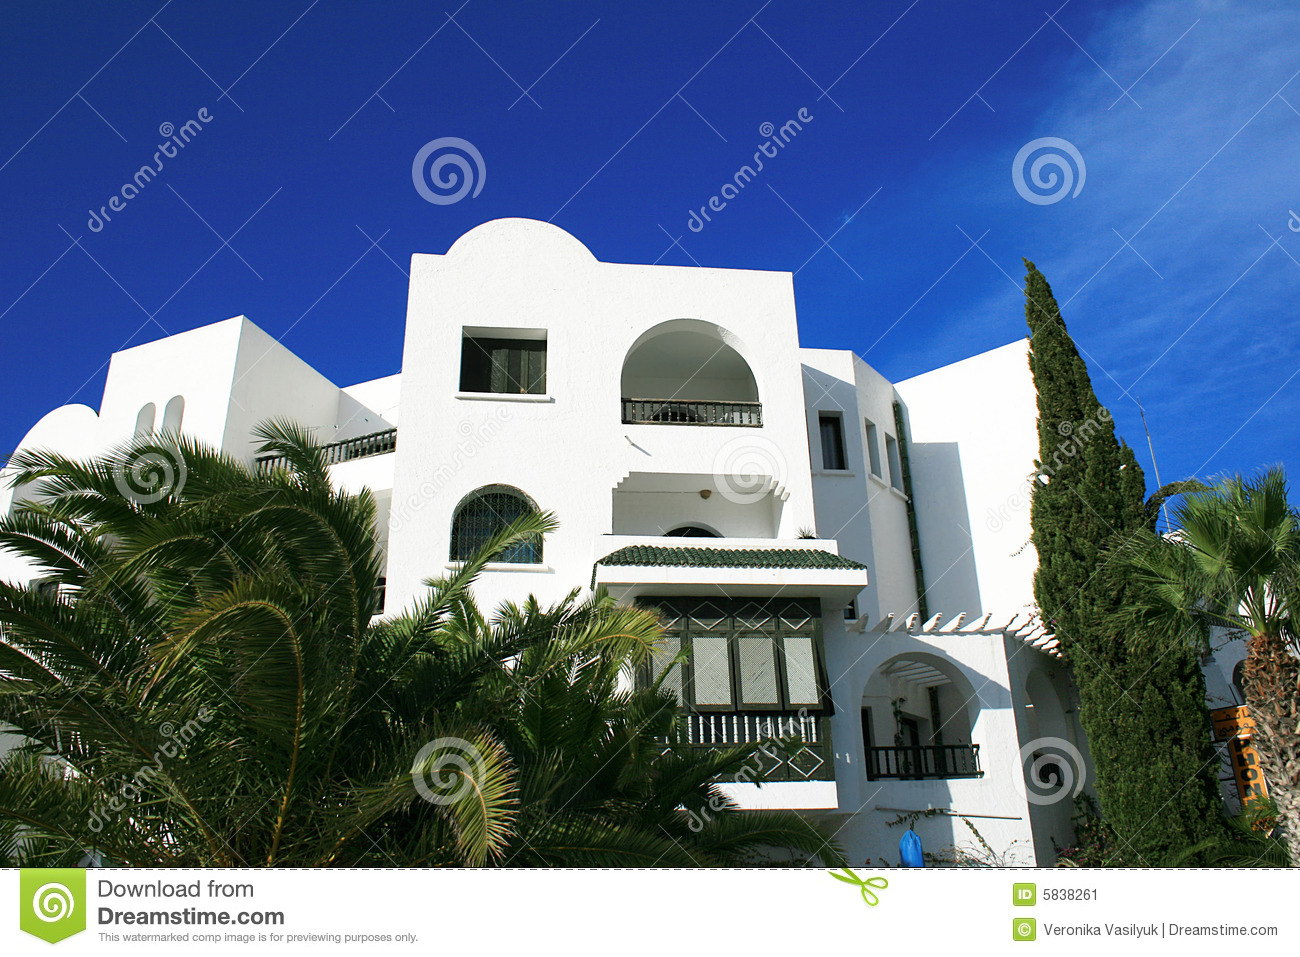 Maison traditionnelle en tunisie image stock image 5838261 for Plan maison tunisie